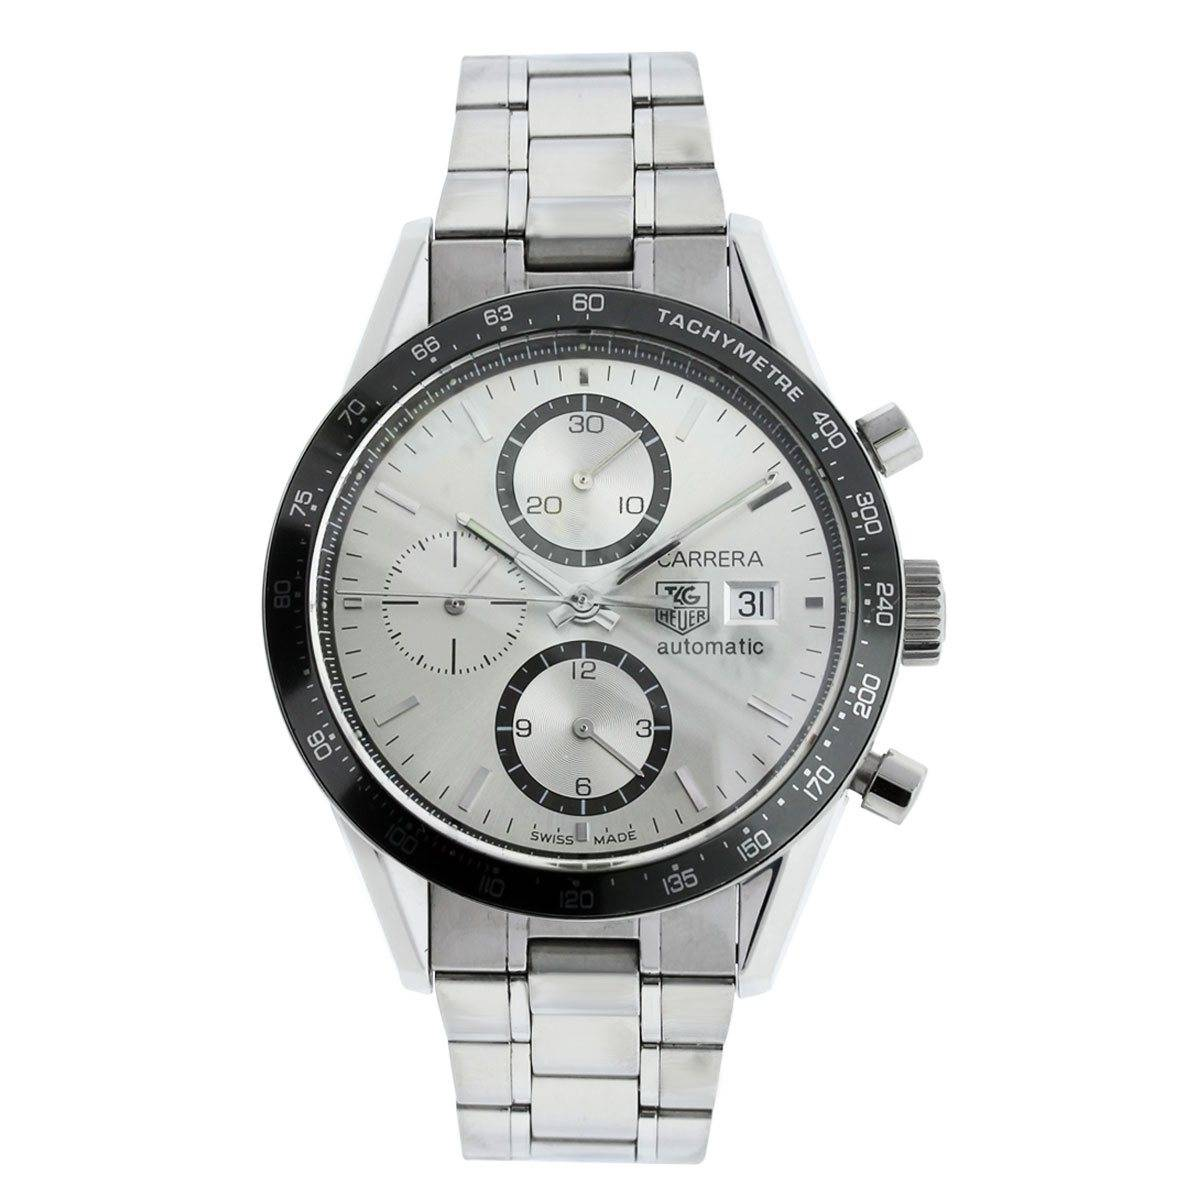 Tag Heuer CV2011 Carrera Automatic Chronograph Watch